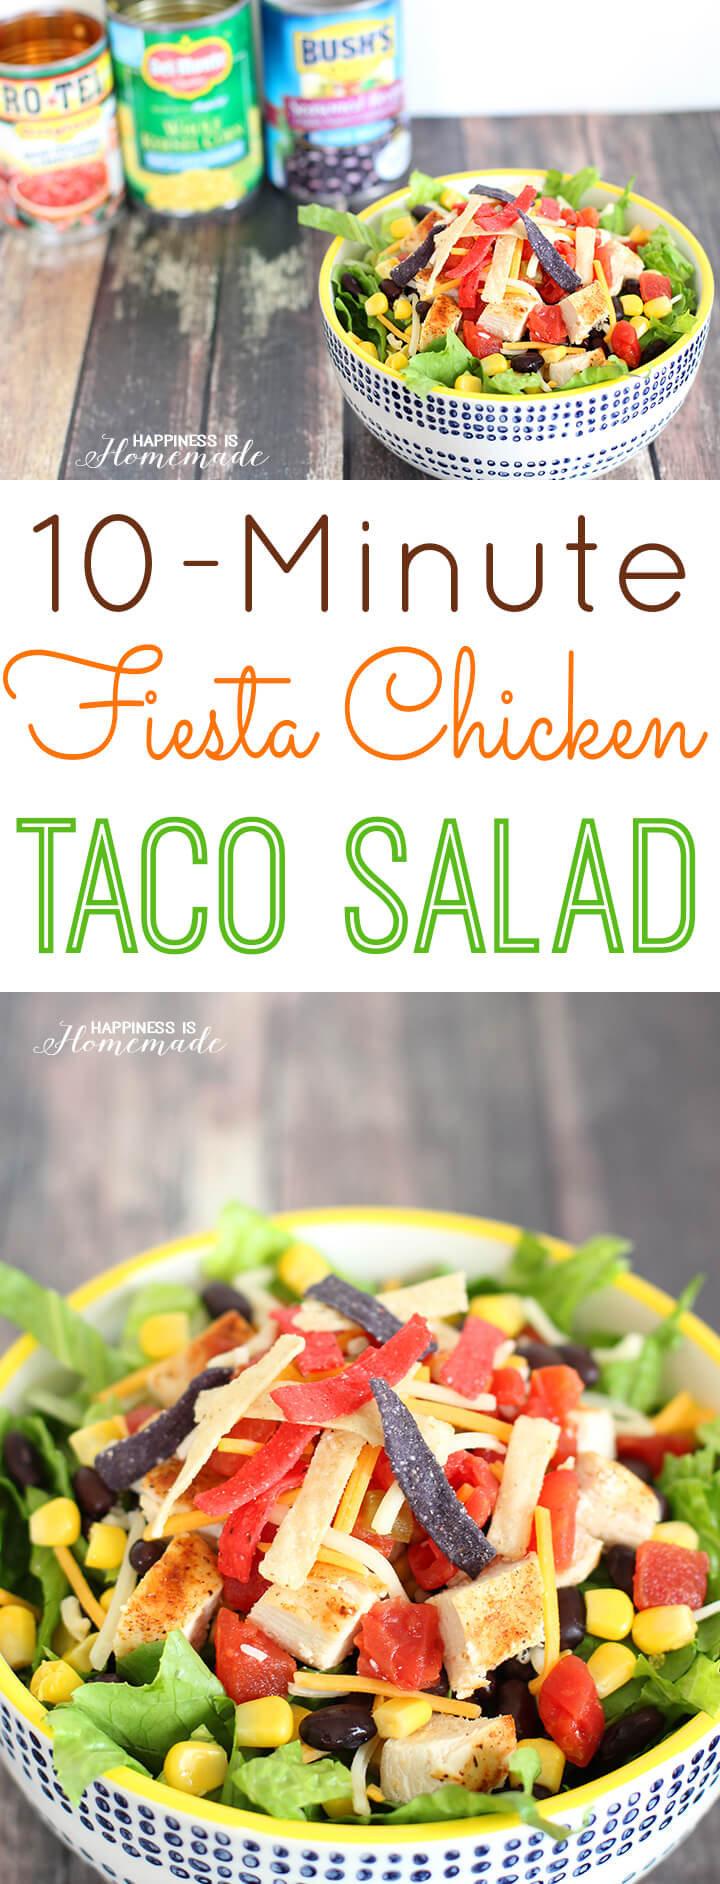 10-Minute Fiesta Chicken Taco Salad